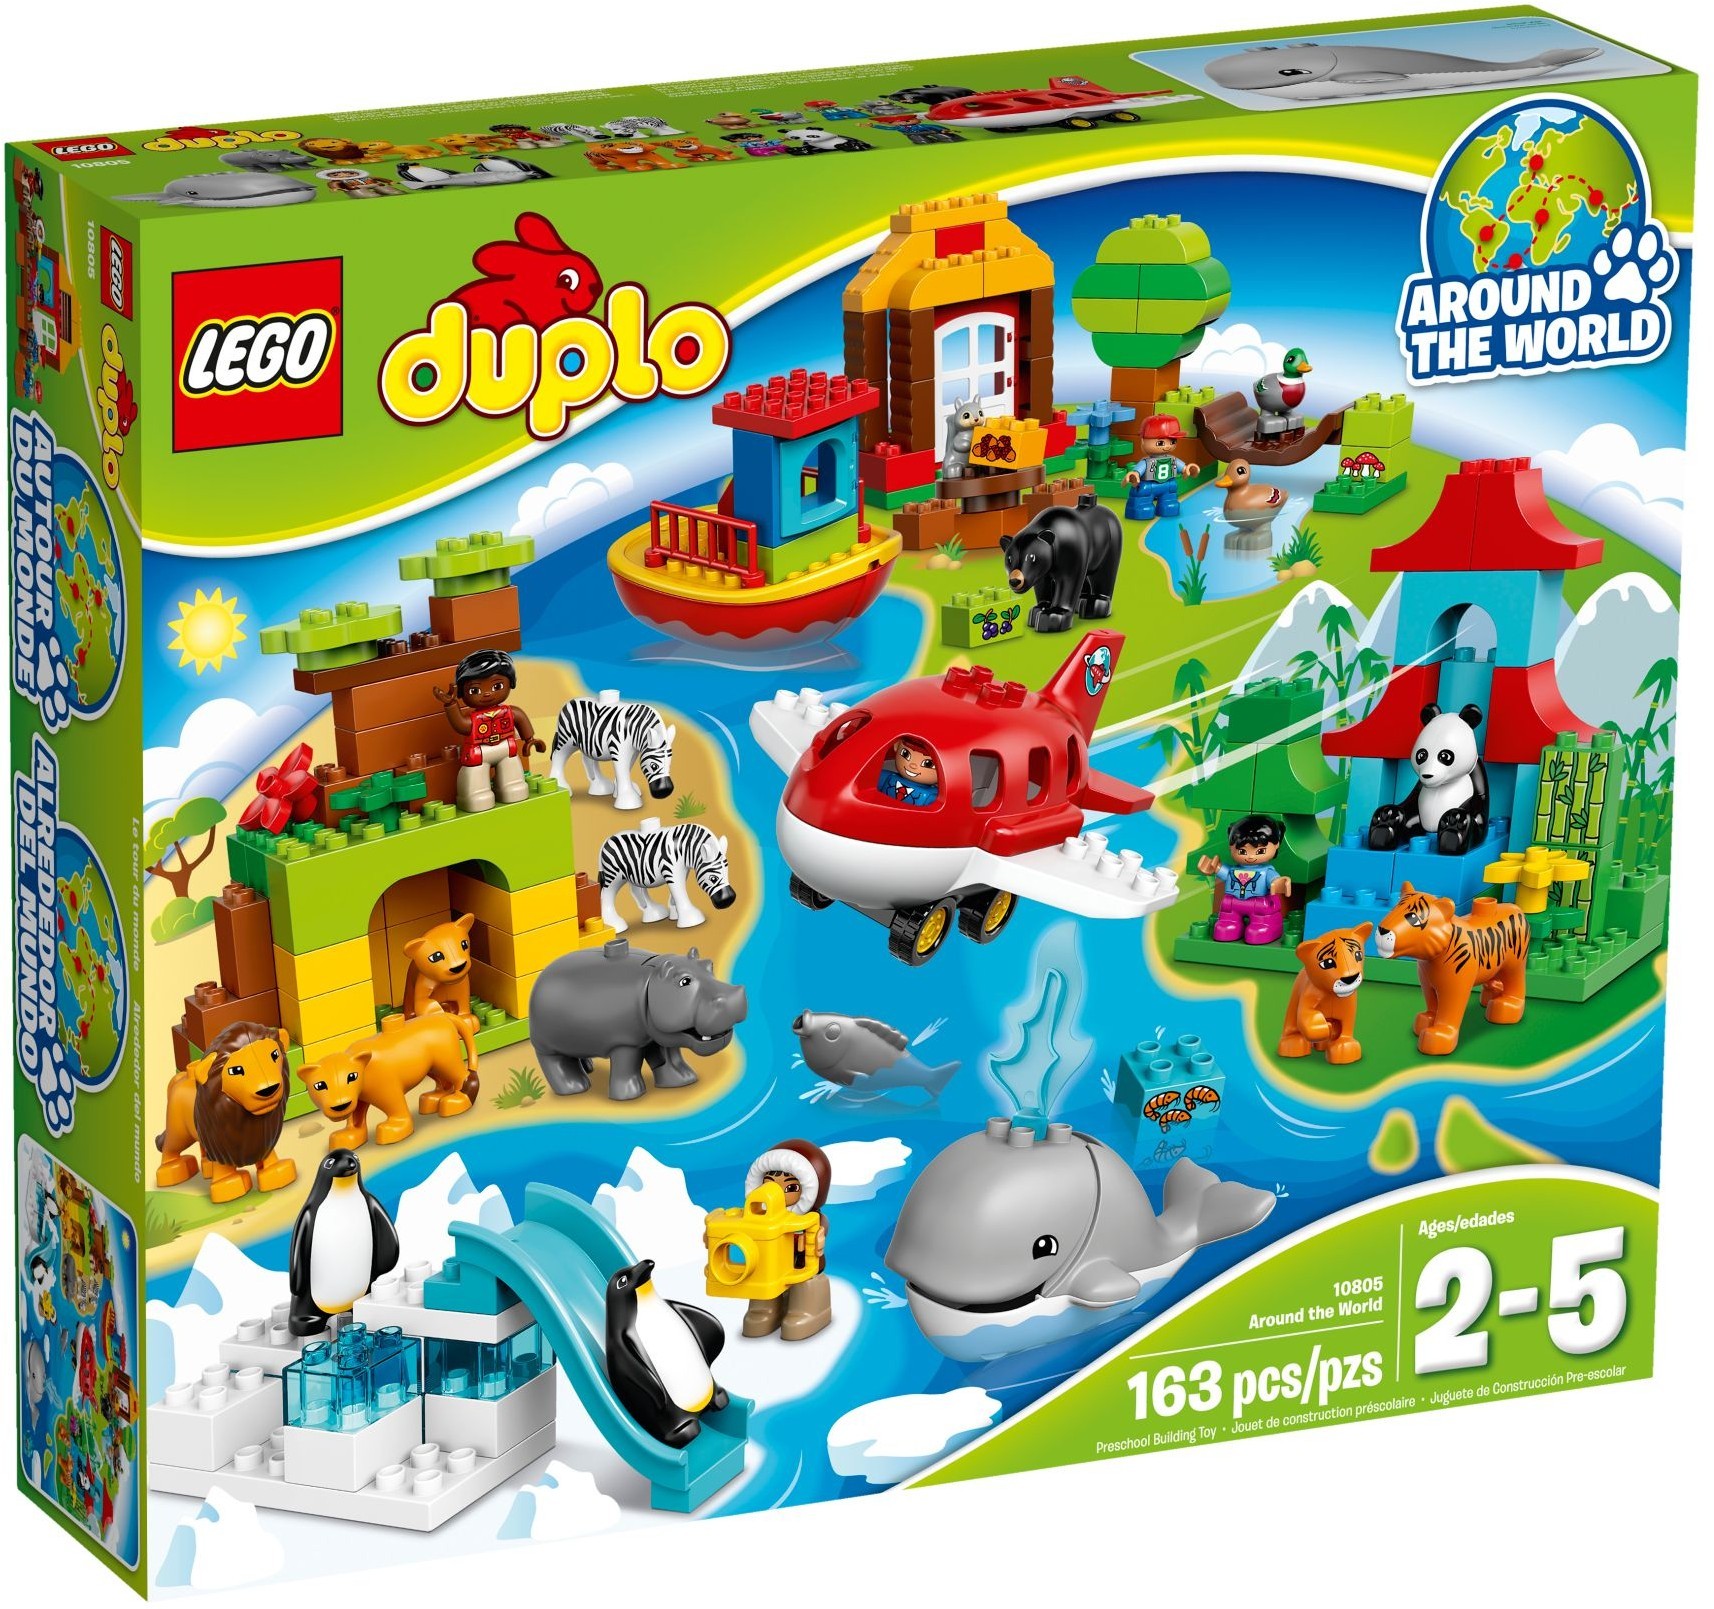 LEGO 10805 - Duplo - Around the World